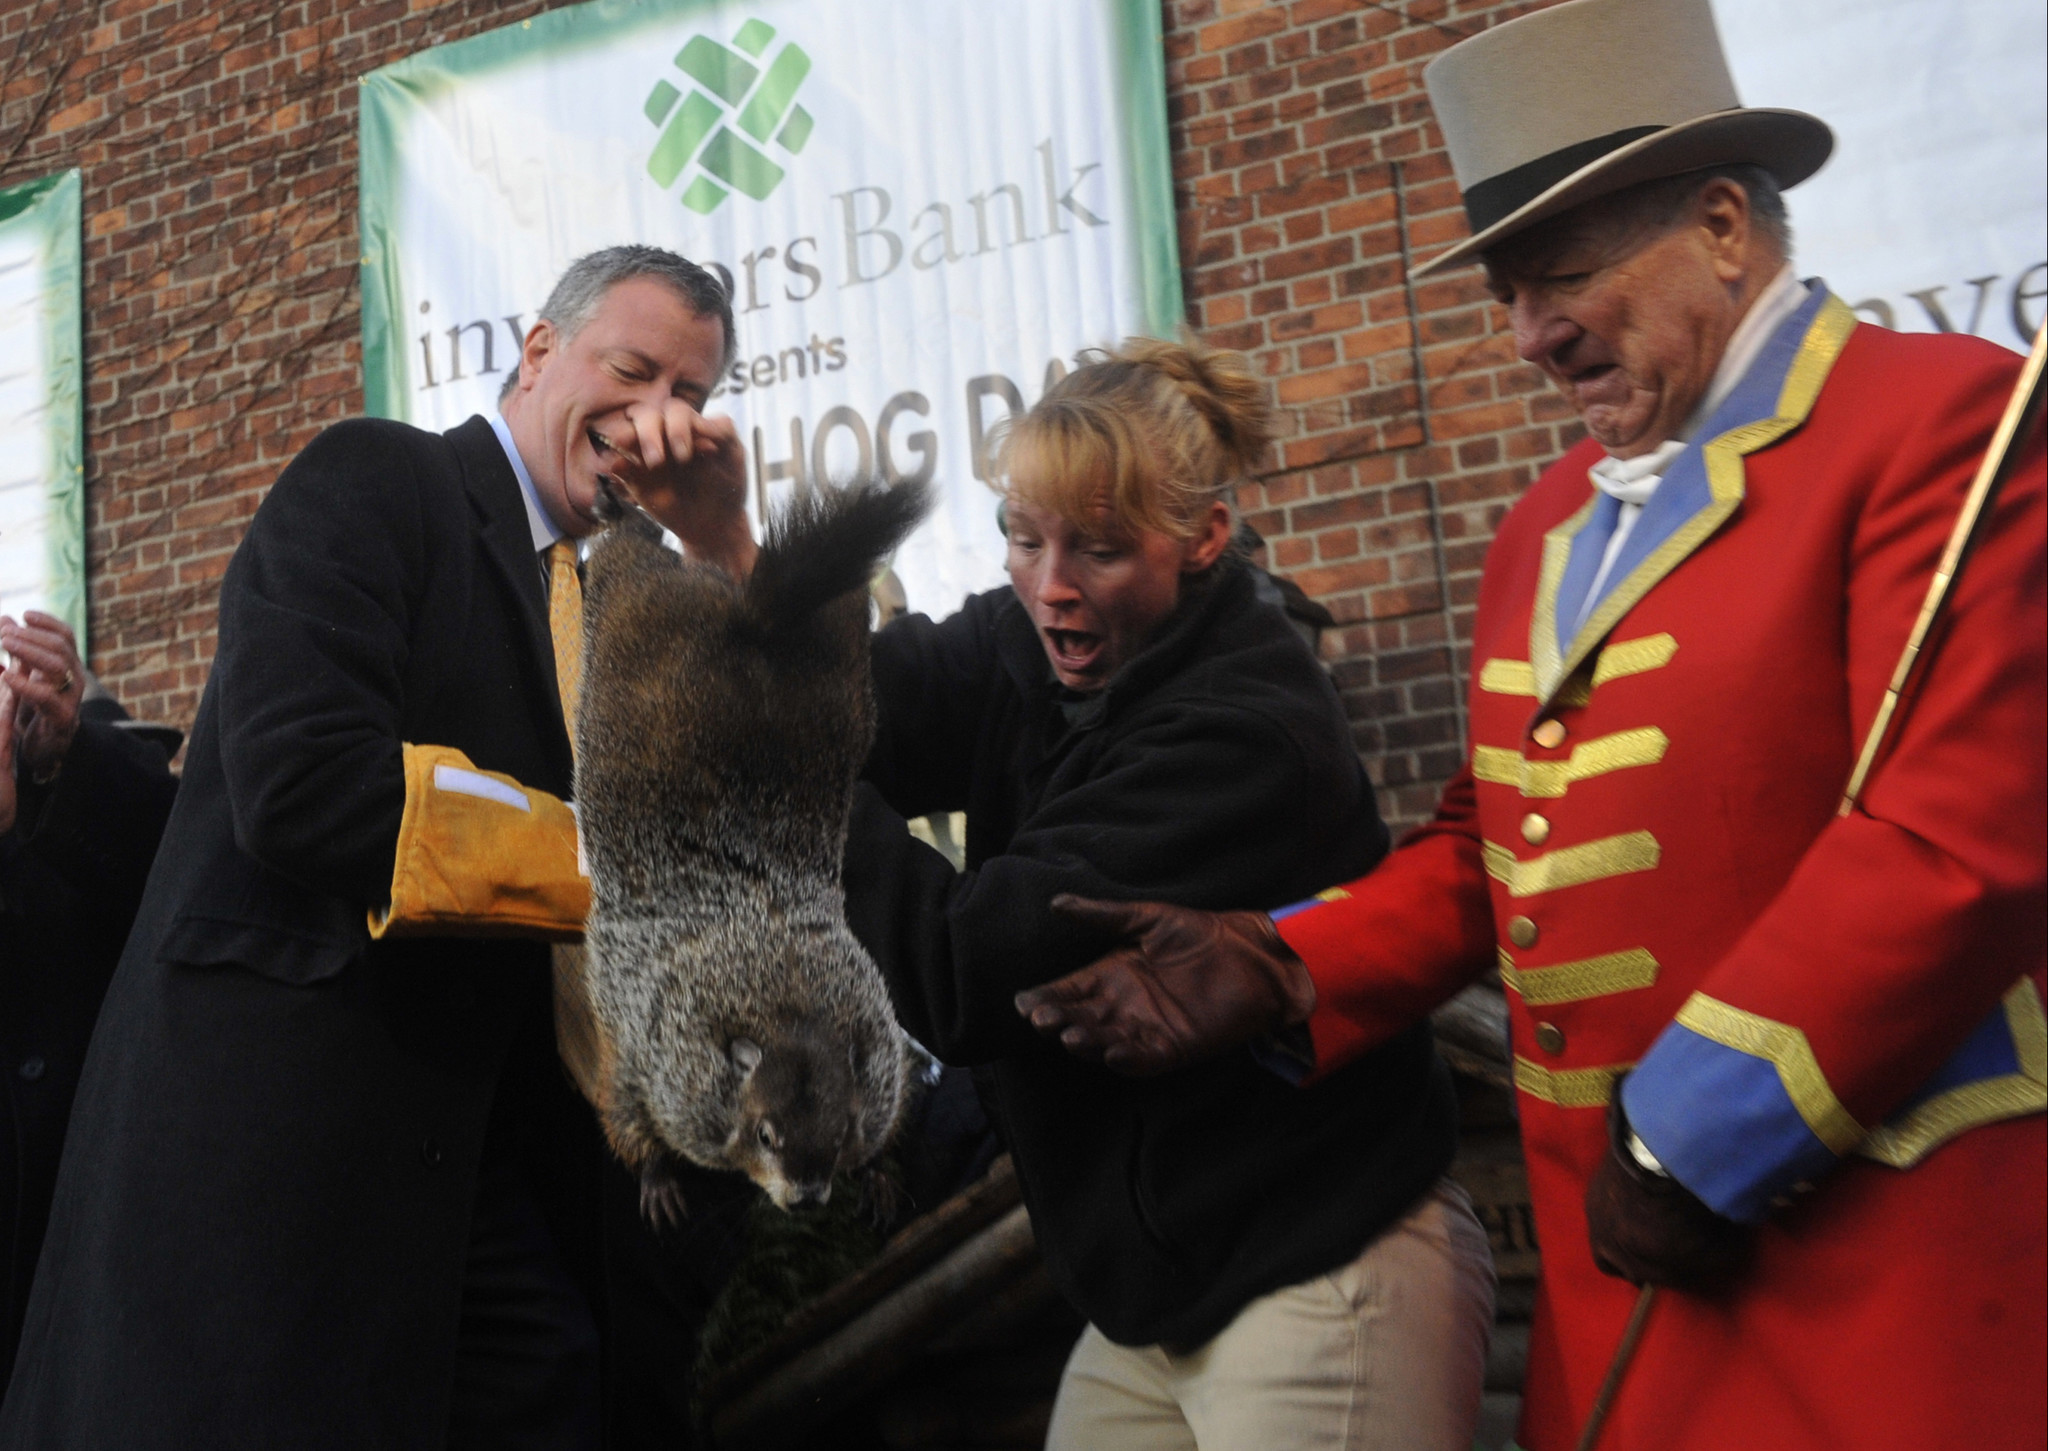 De Blasio won't celebrate Groundhog Day ever again after killing Staten Island Chuck